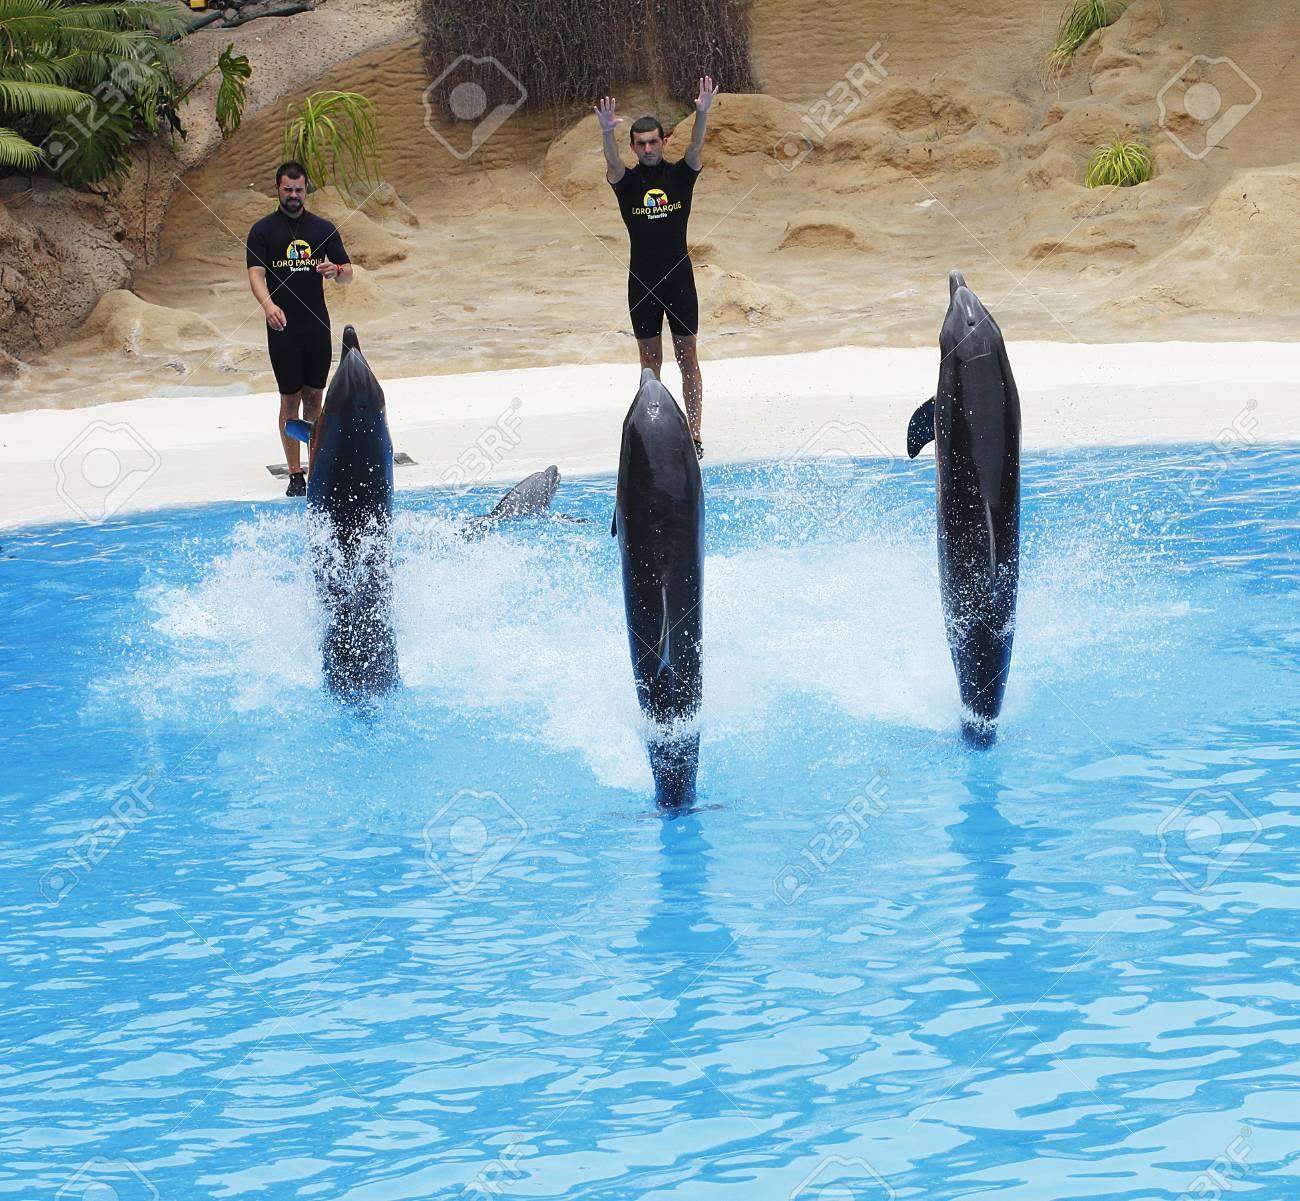 PUERTO DE LA CRUZ, TENERIFE - JULY 4: Dolphin show in the Loro Parque, which is now Tenerife's largest man made attraction with europe's biggest dolphin pool. July 4 2012 Puerto De La Cruz, Tenerife Stock Photo - 14756036